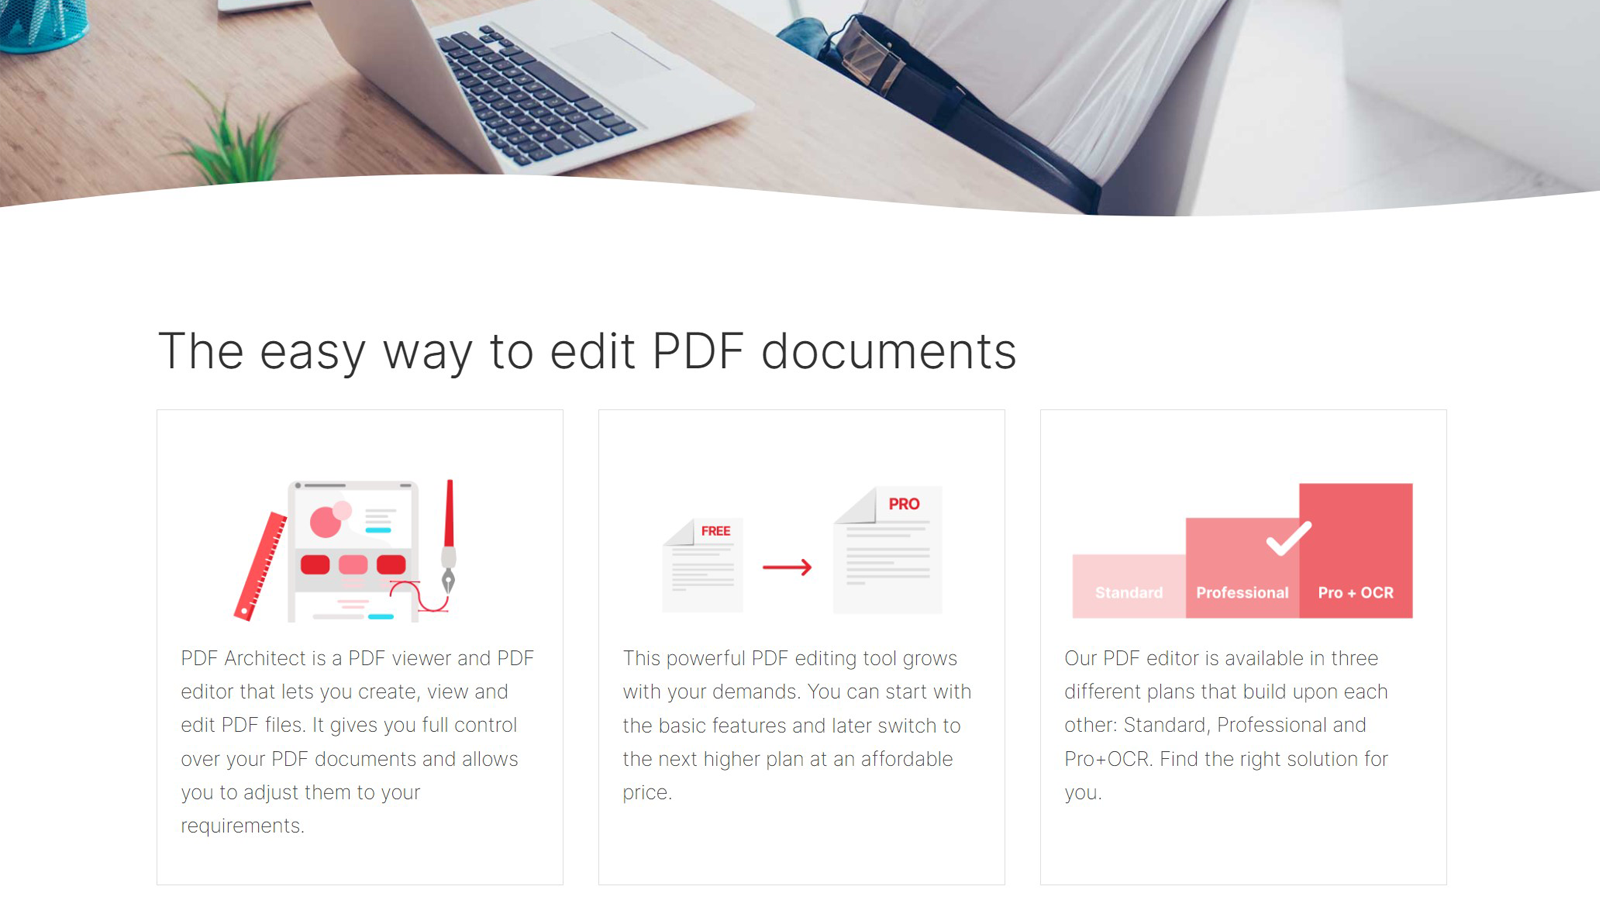 PDF Architect 8 with features